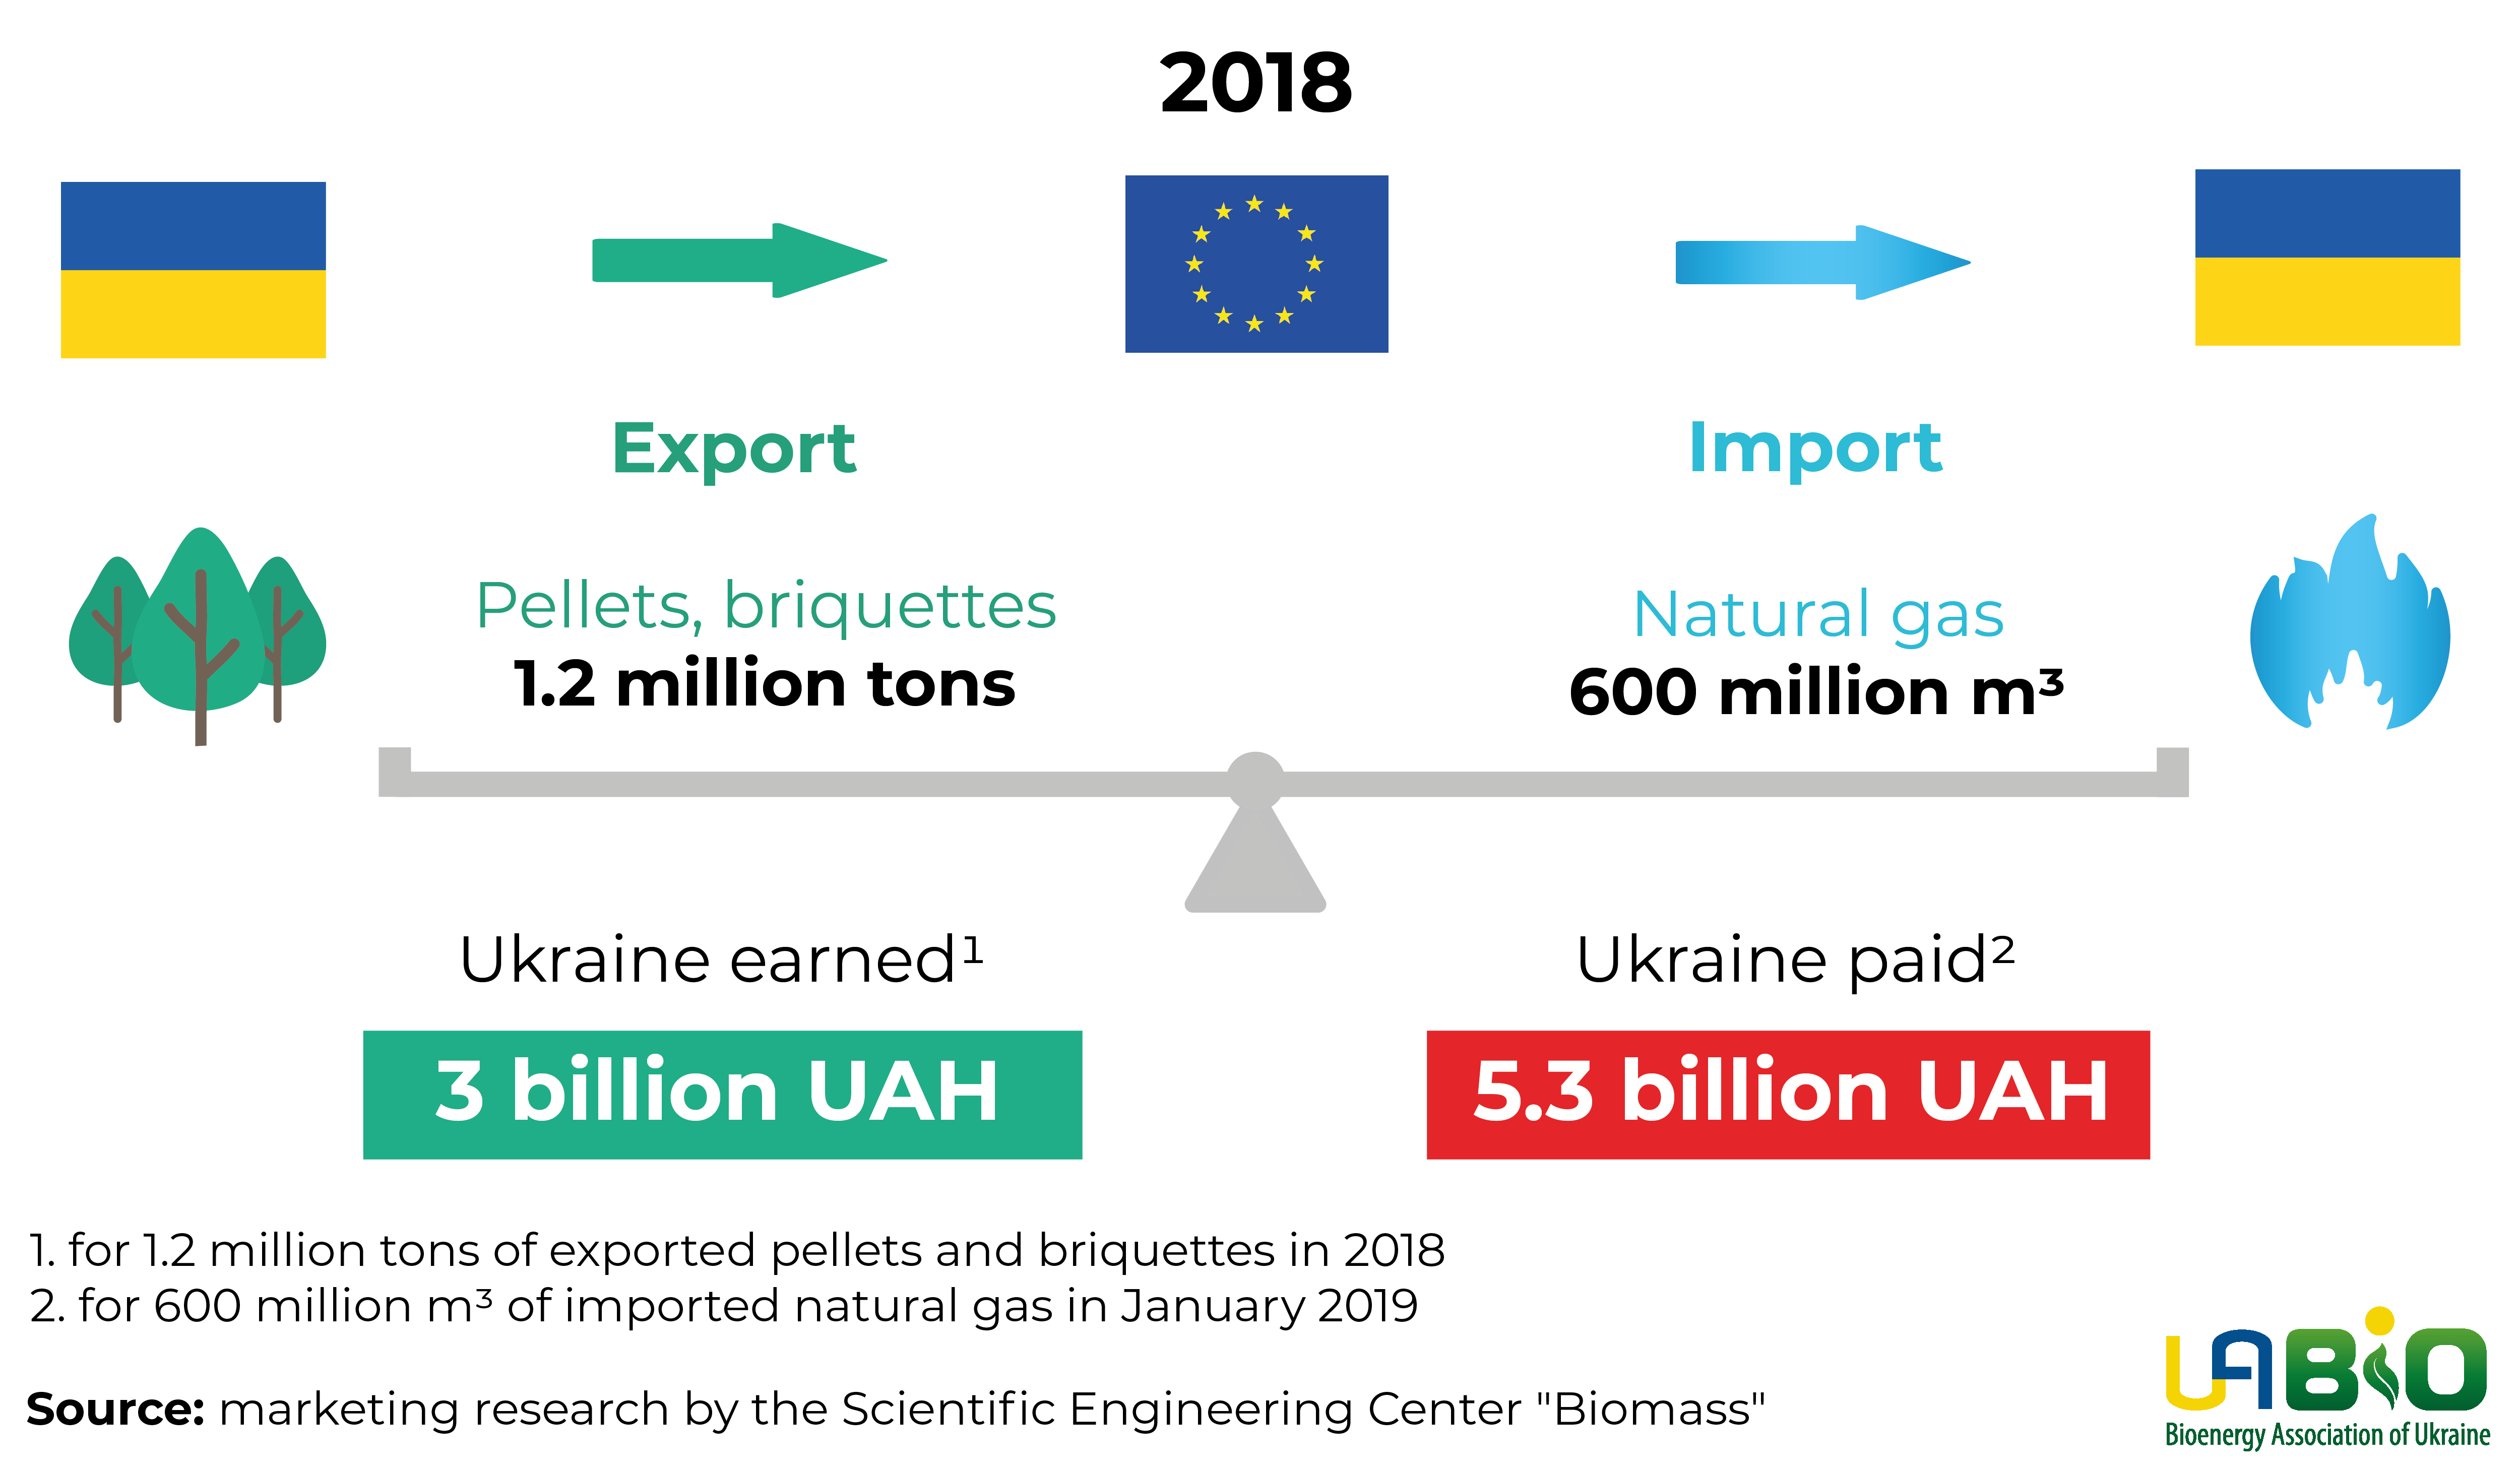 Export of biofuel and import of natural gas by Ukraine in 2018.